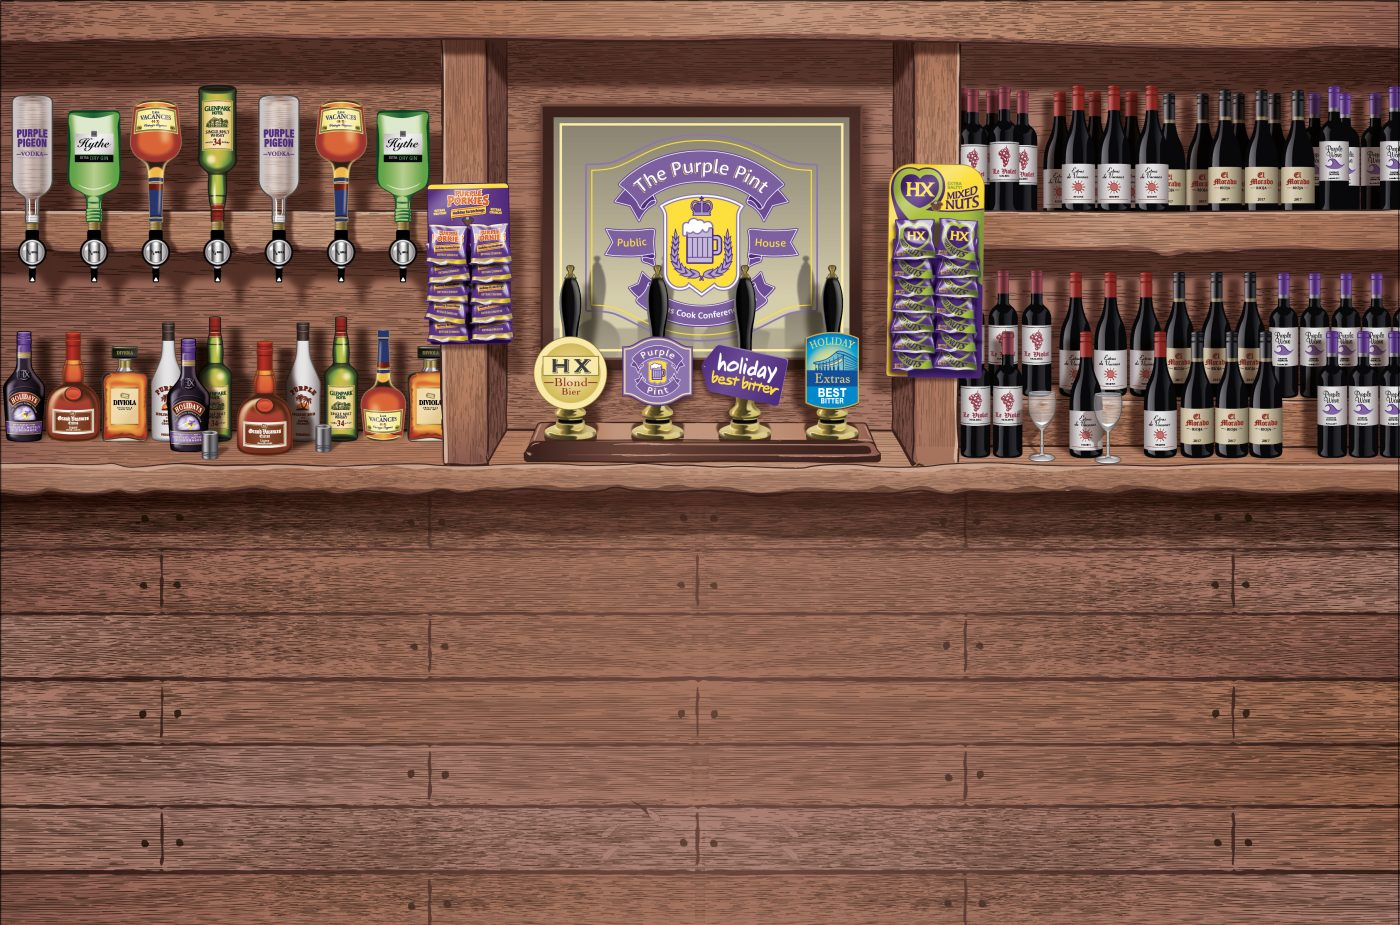 Exhibition Stand Extras : Creative exhibition stand design the purple pint oak creative